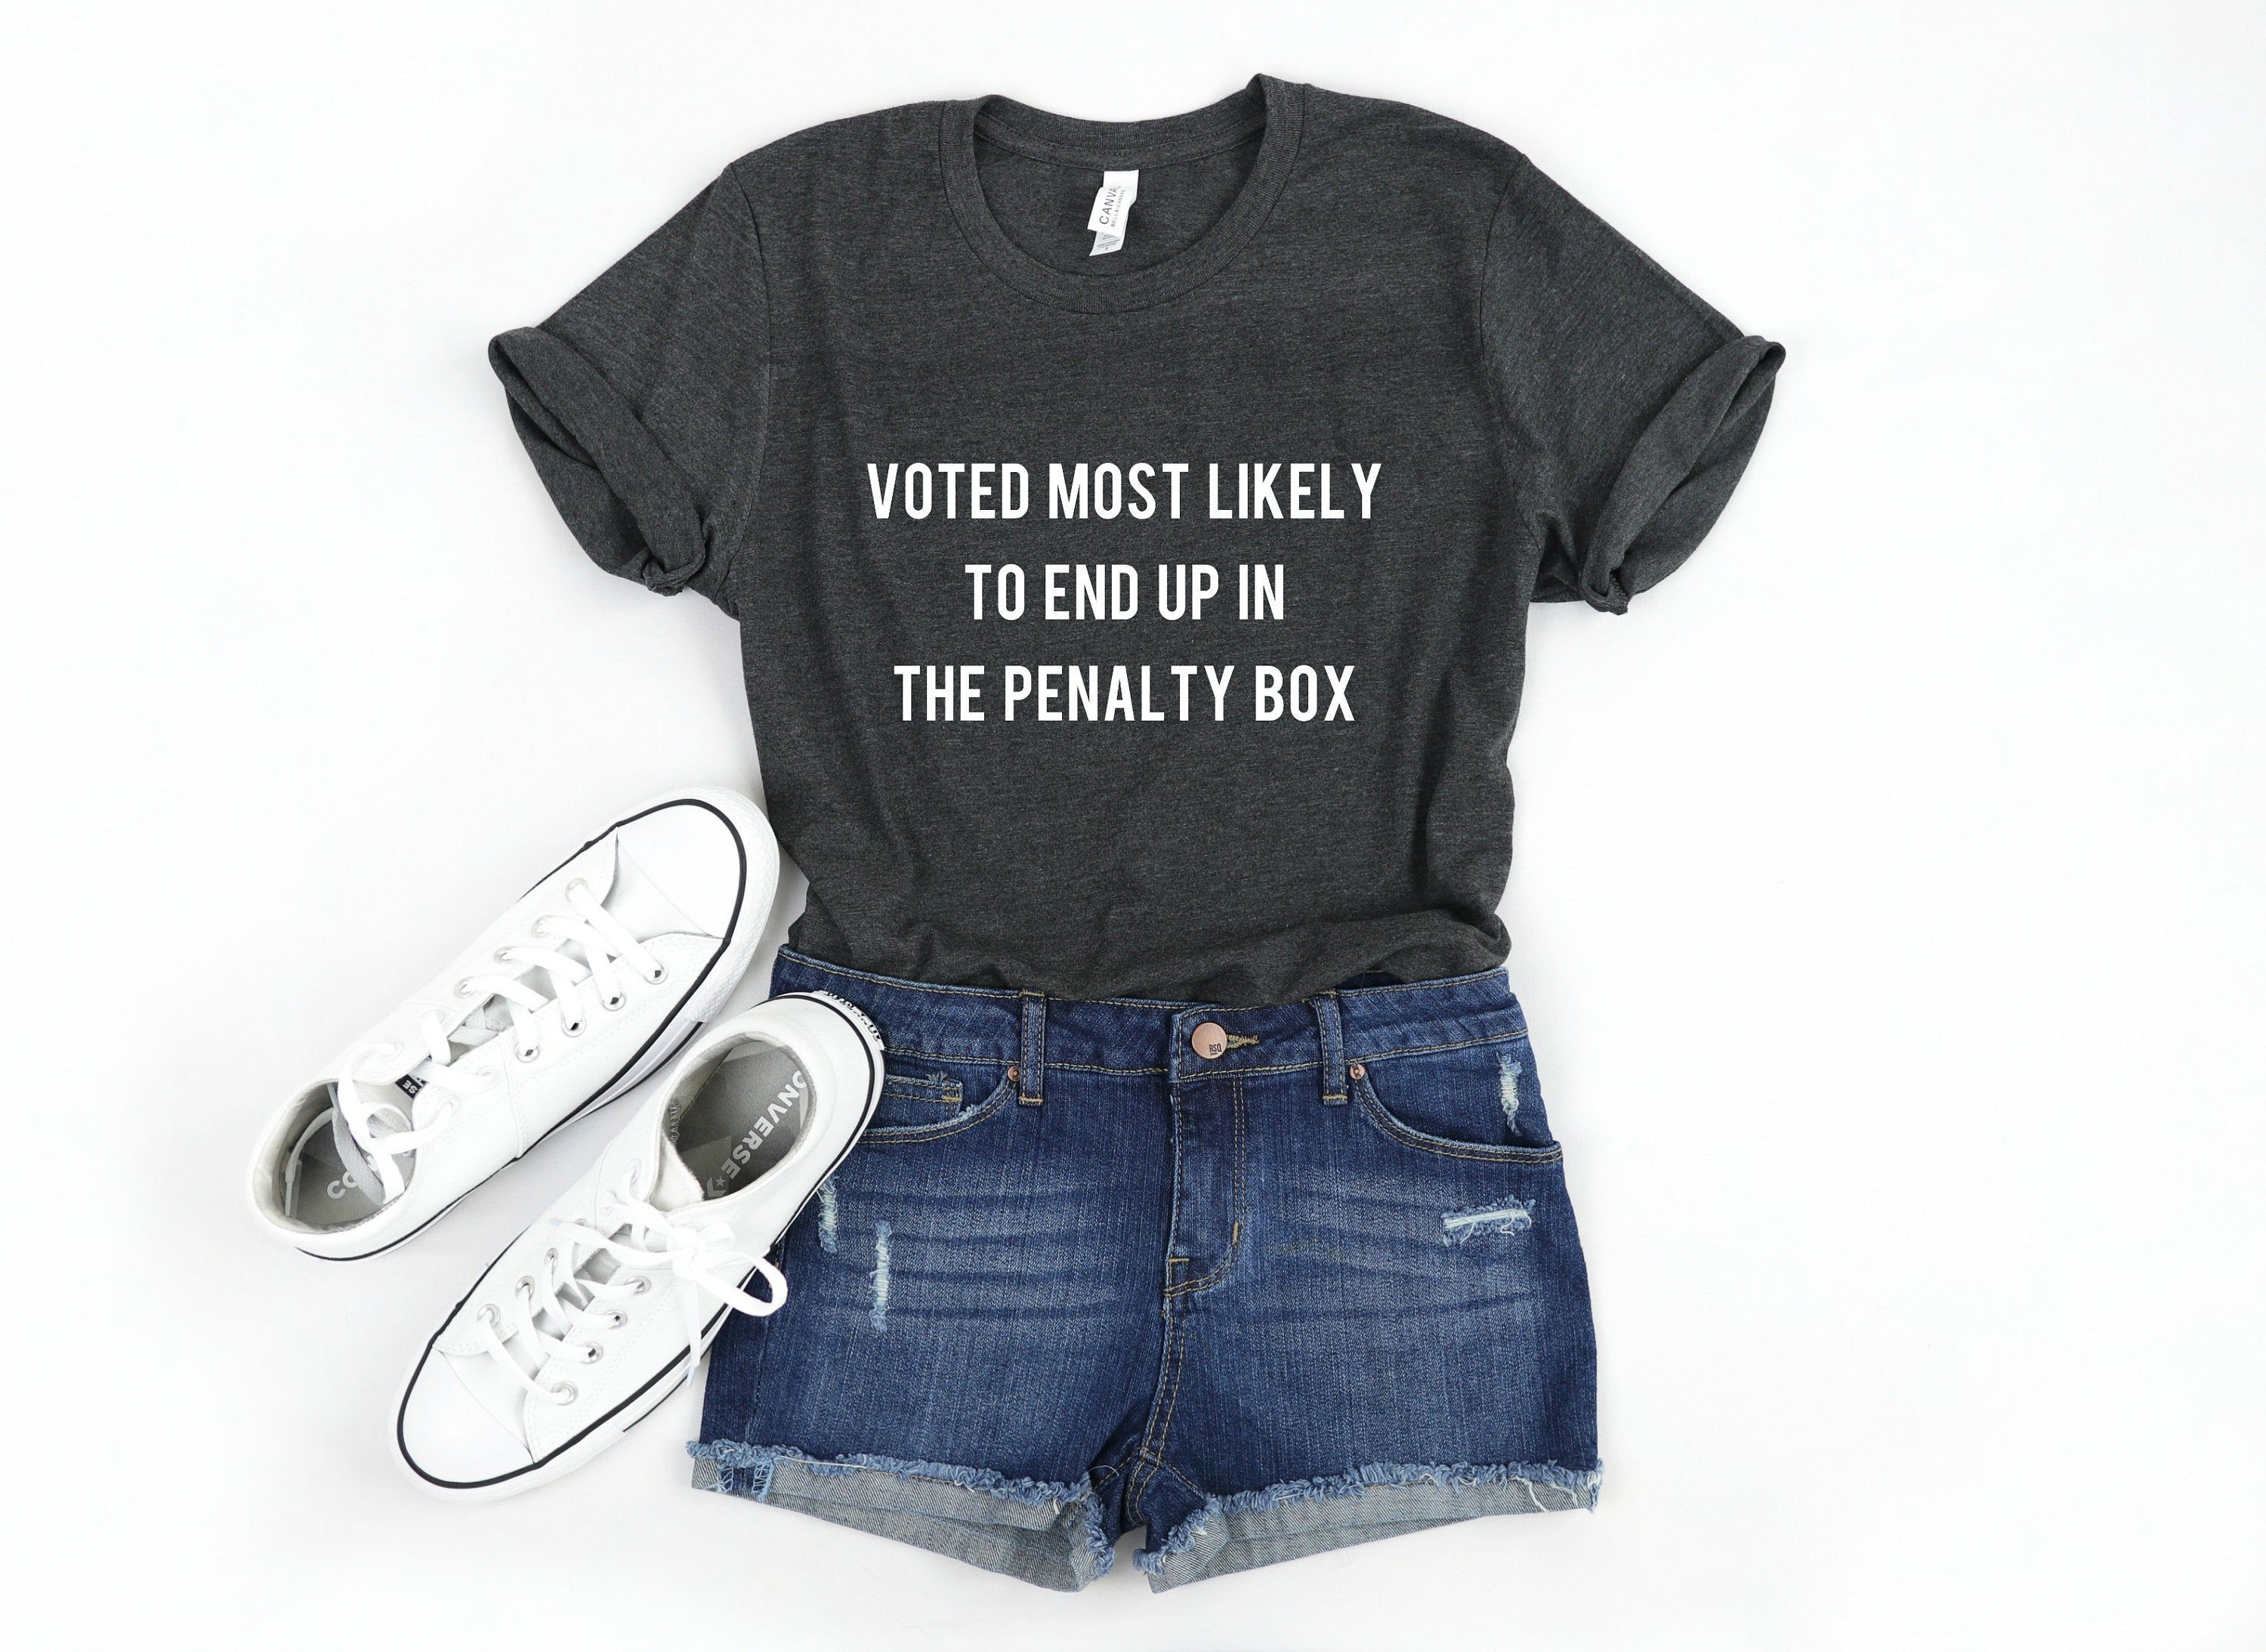 Voted Most Likely To End Up In The Penalty Box Unisex T Shirt Women S Hockey Shirt Funny Hockey Shirt Women S Spots Shirt Game Day Shirt Brunch Shirts Funny Brunch Shirts Womens Workout